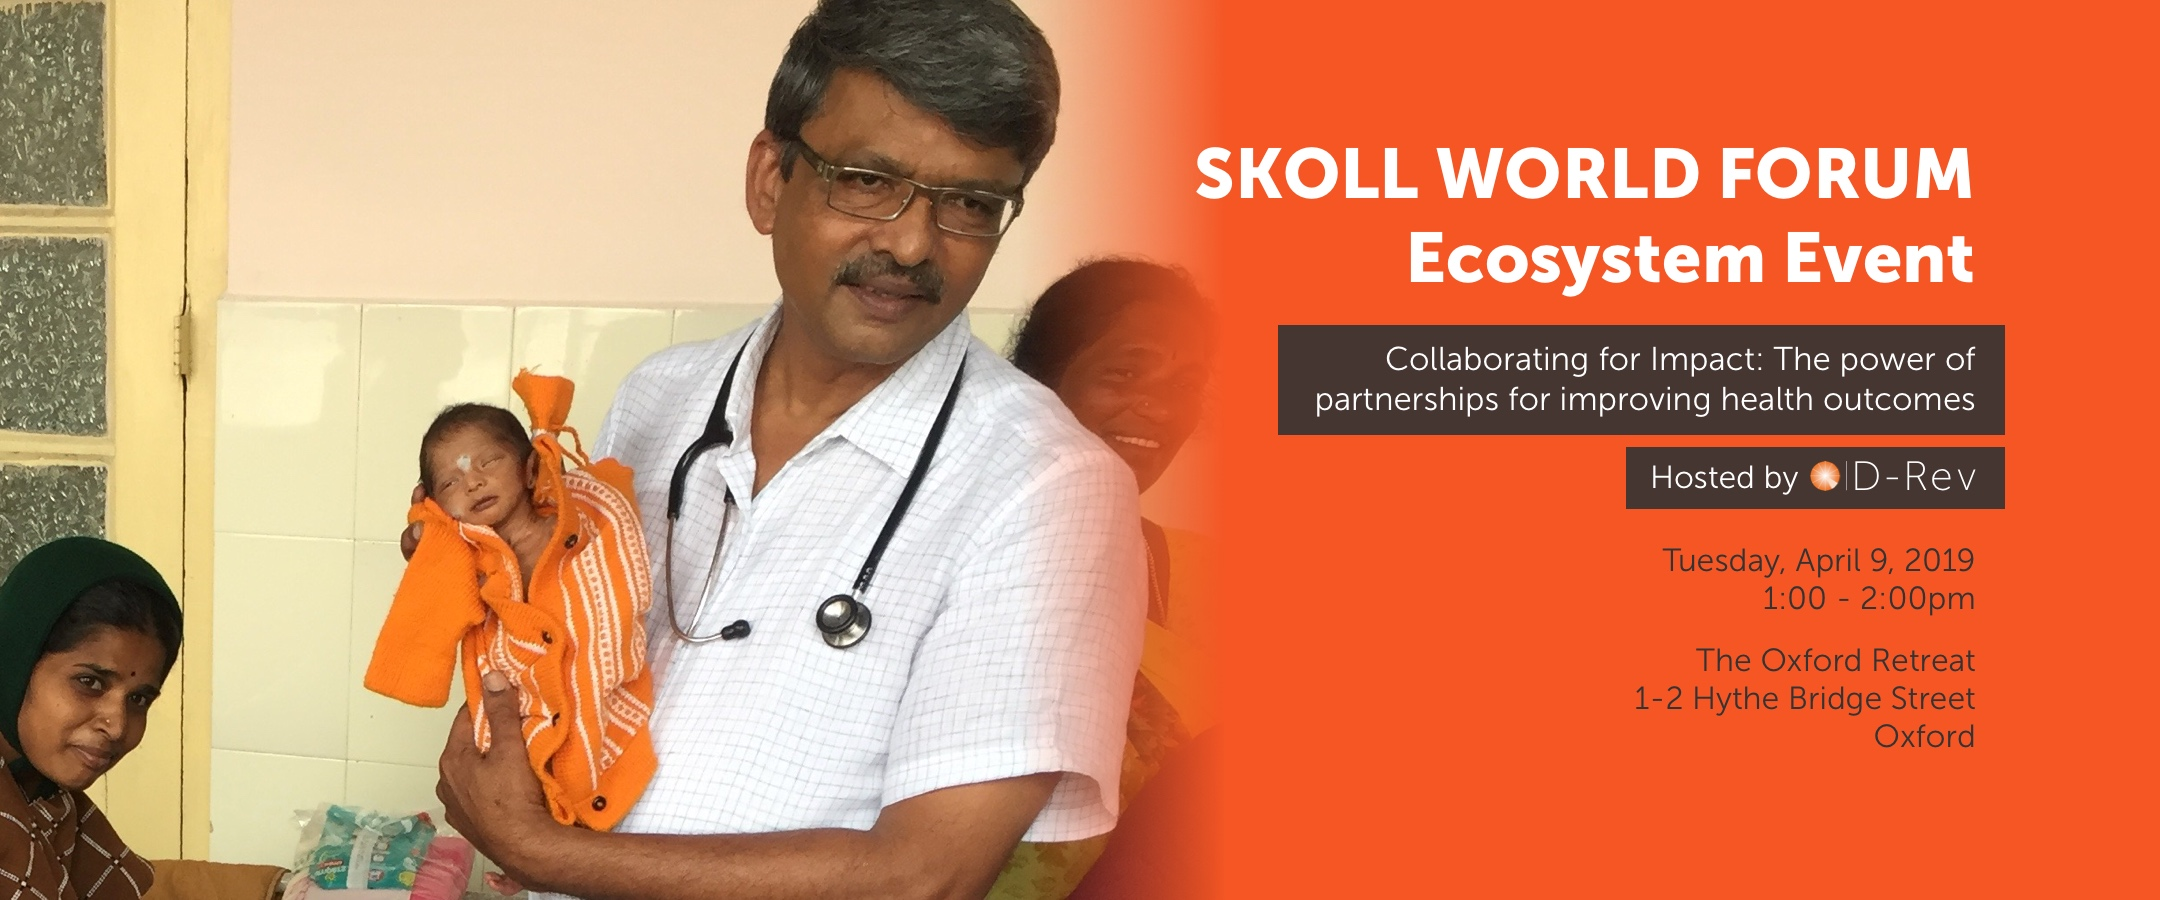 Skoll World Forum Ecosystem Event